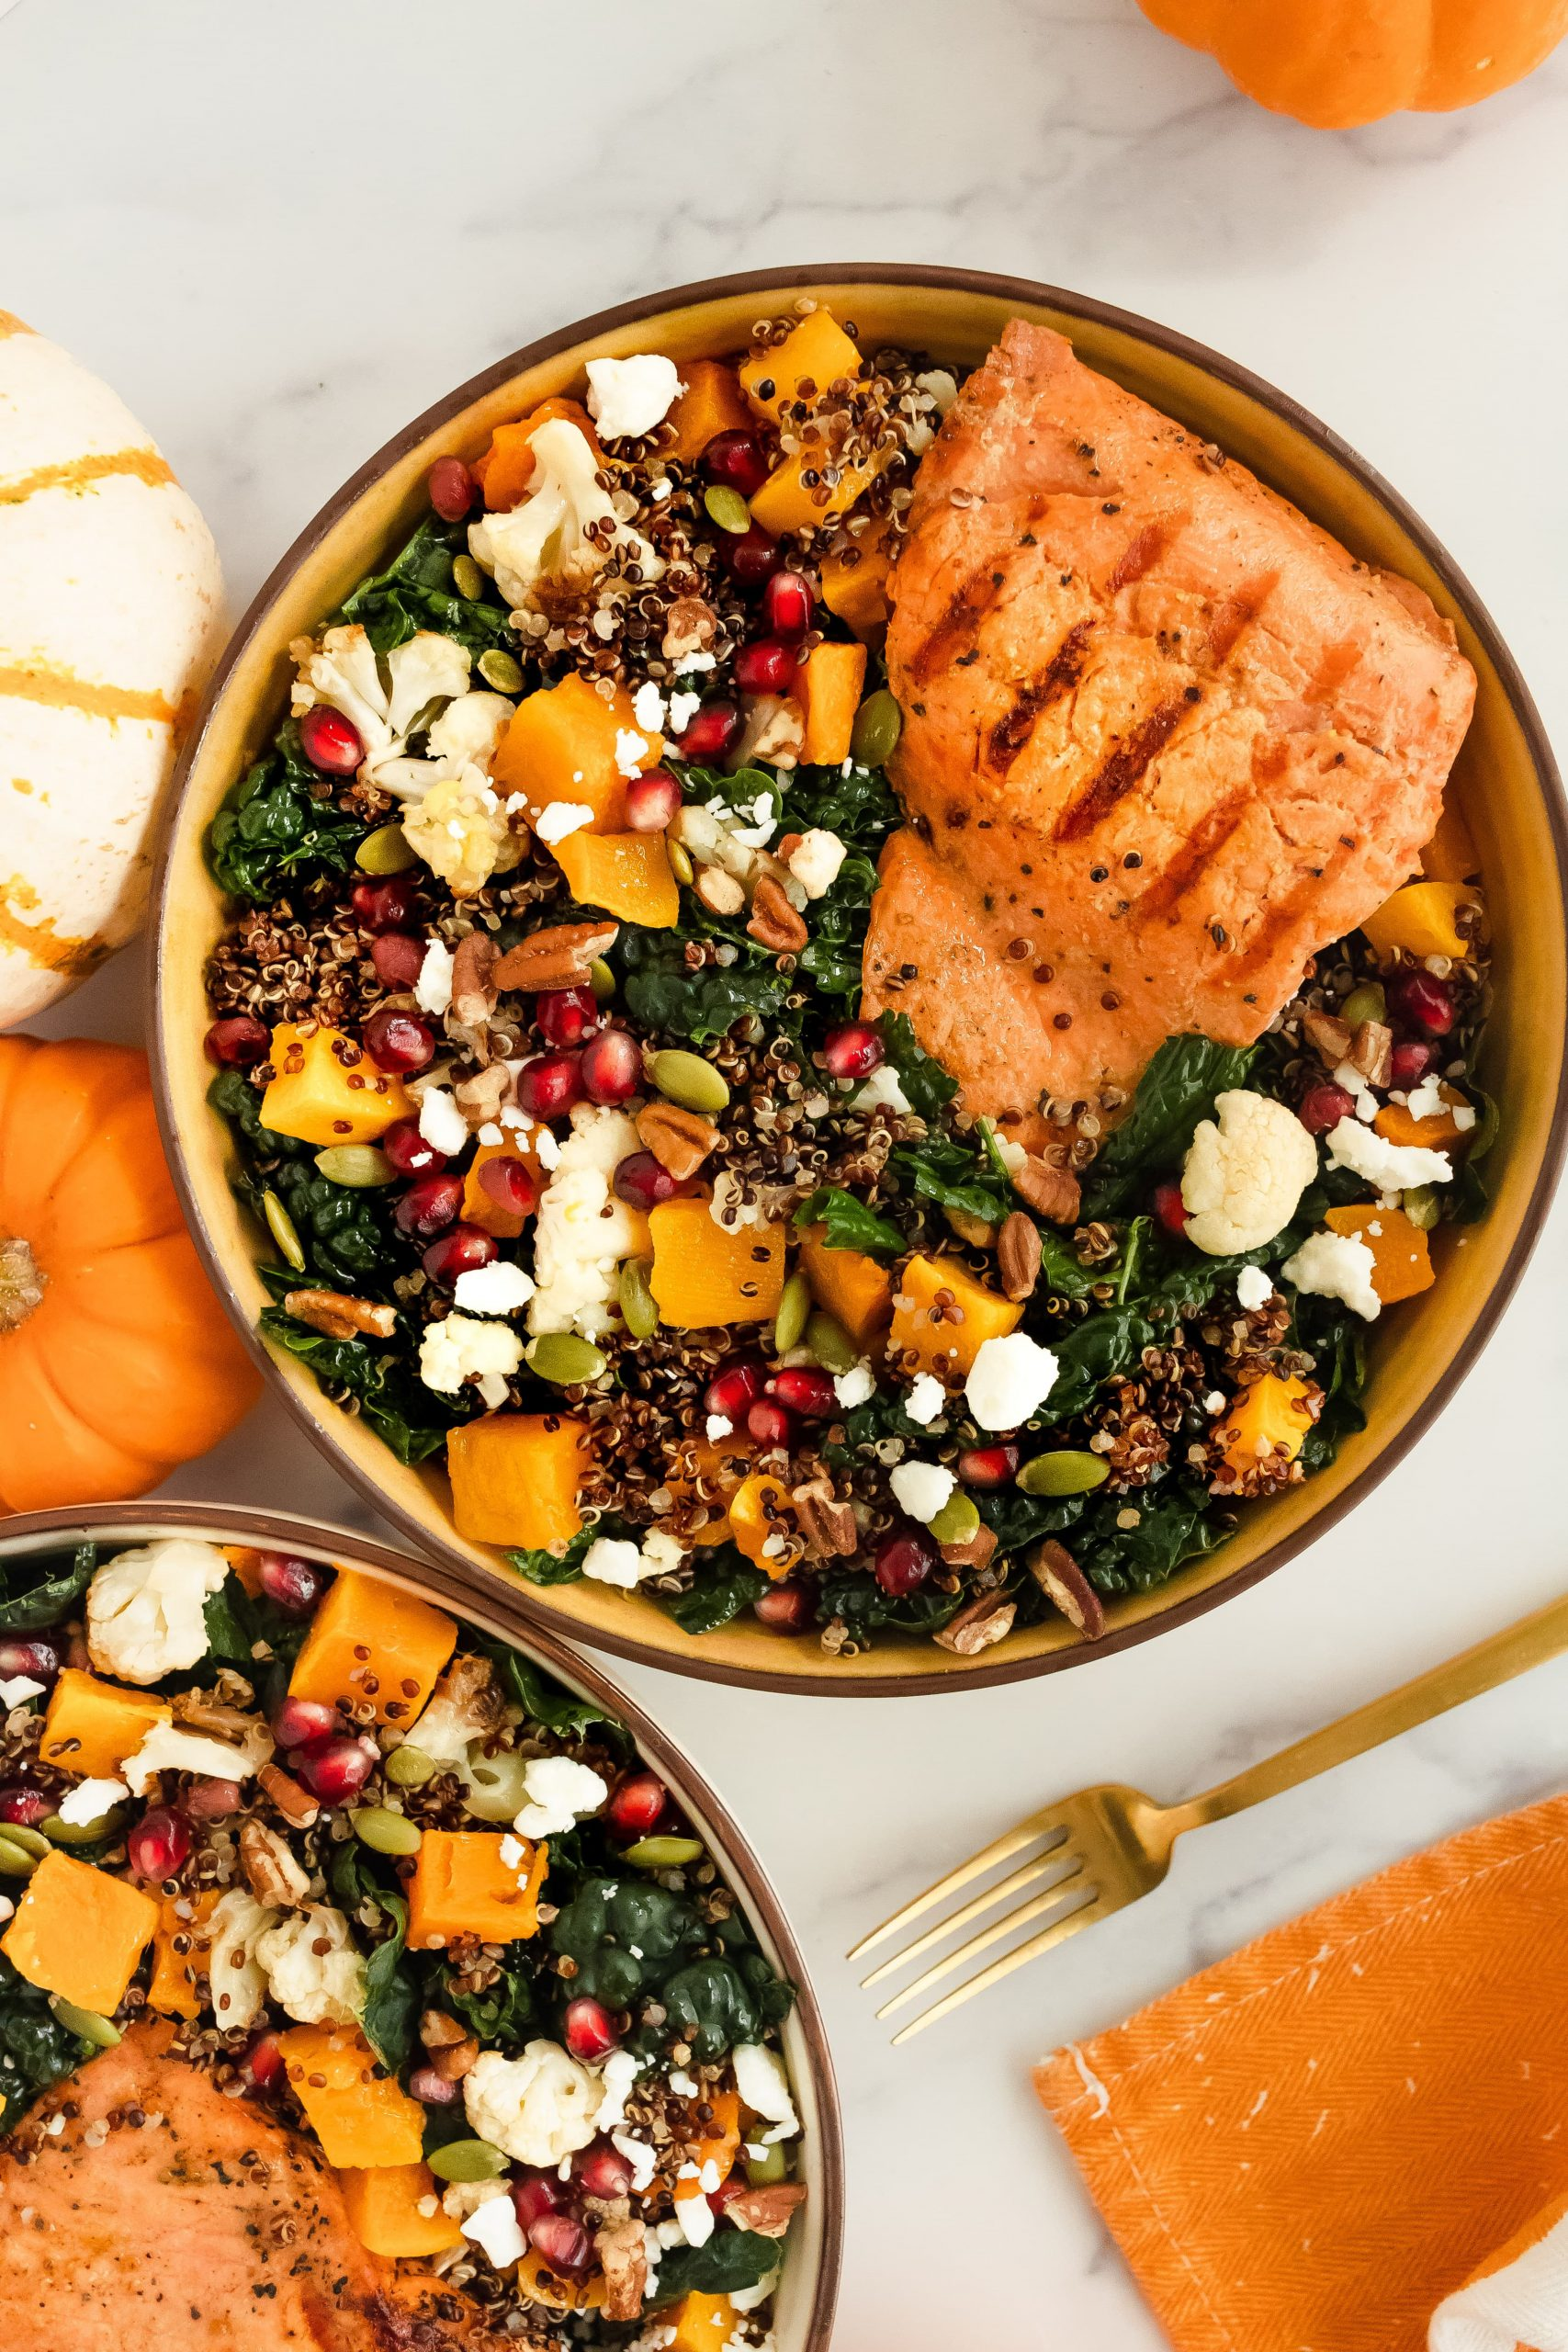 Autumn Salmon & Squash bowl with kale, butternut squash, apples, cauliflower, pomegranate seeds, pecans, pumpkin seeds, quinoa and feta cheese